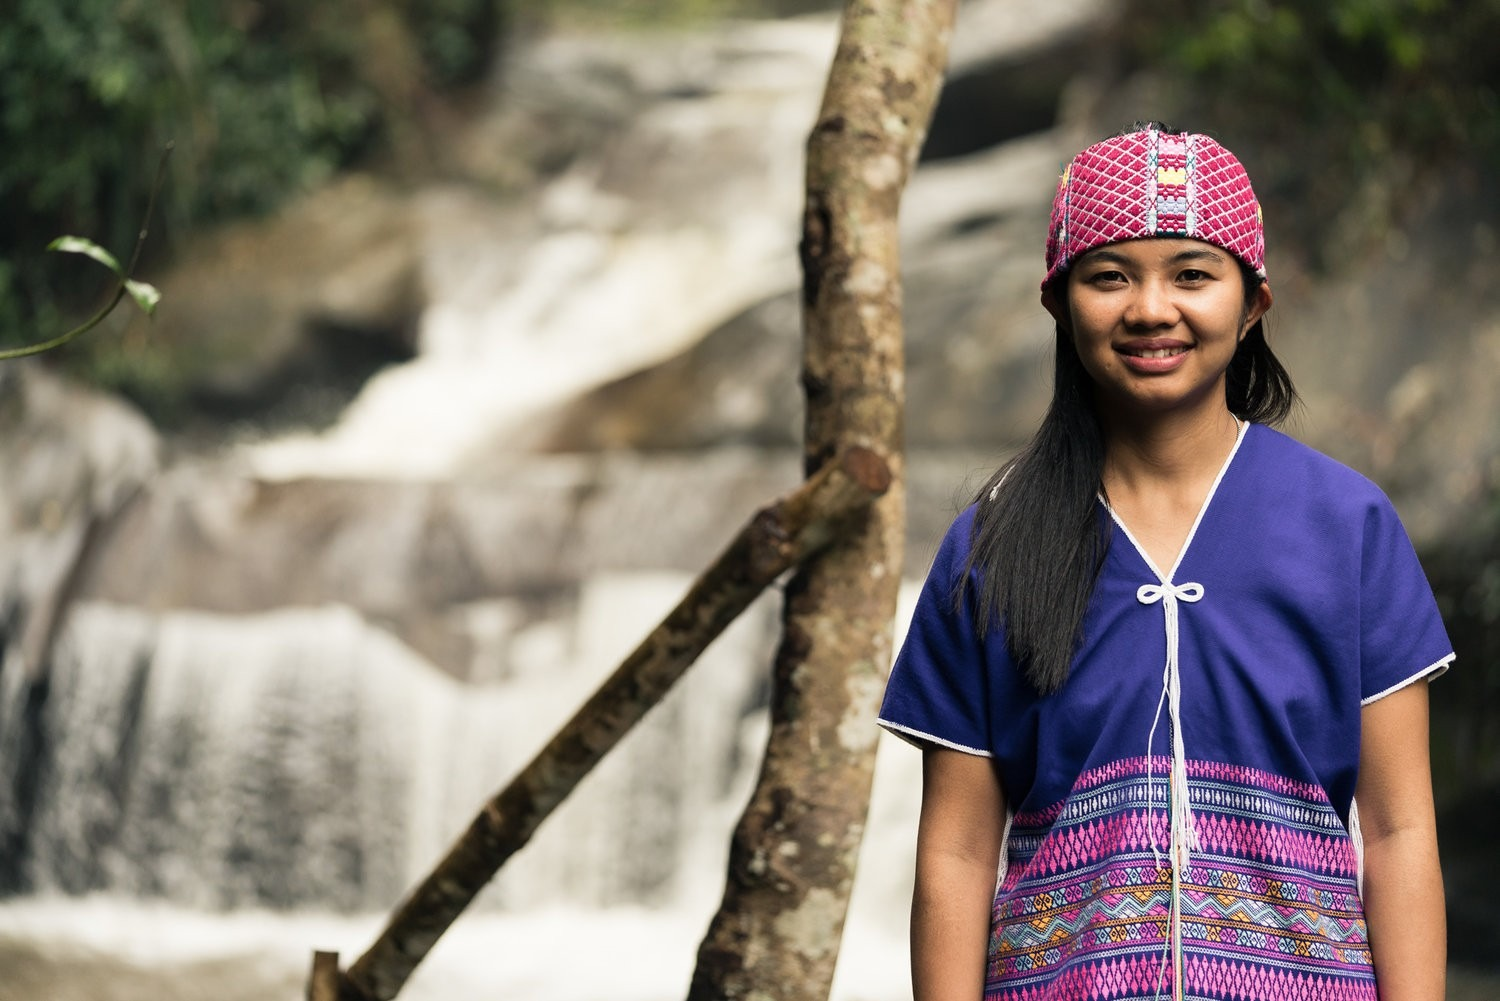 guide and homestay host